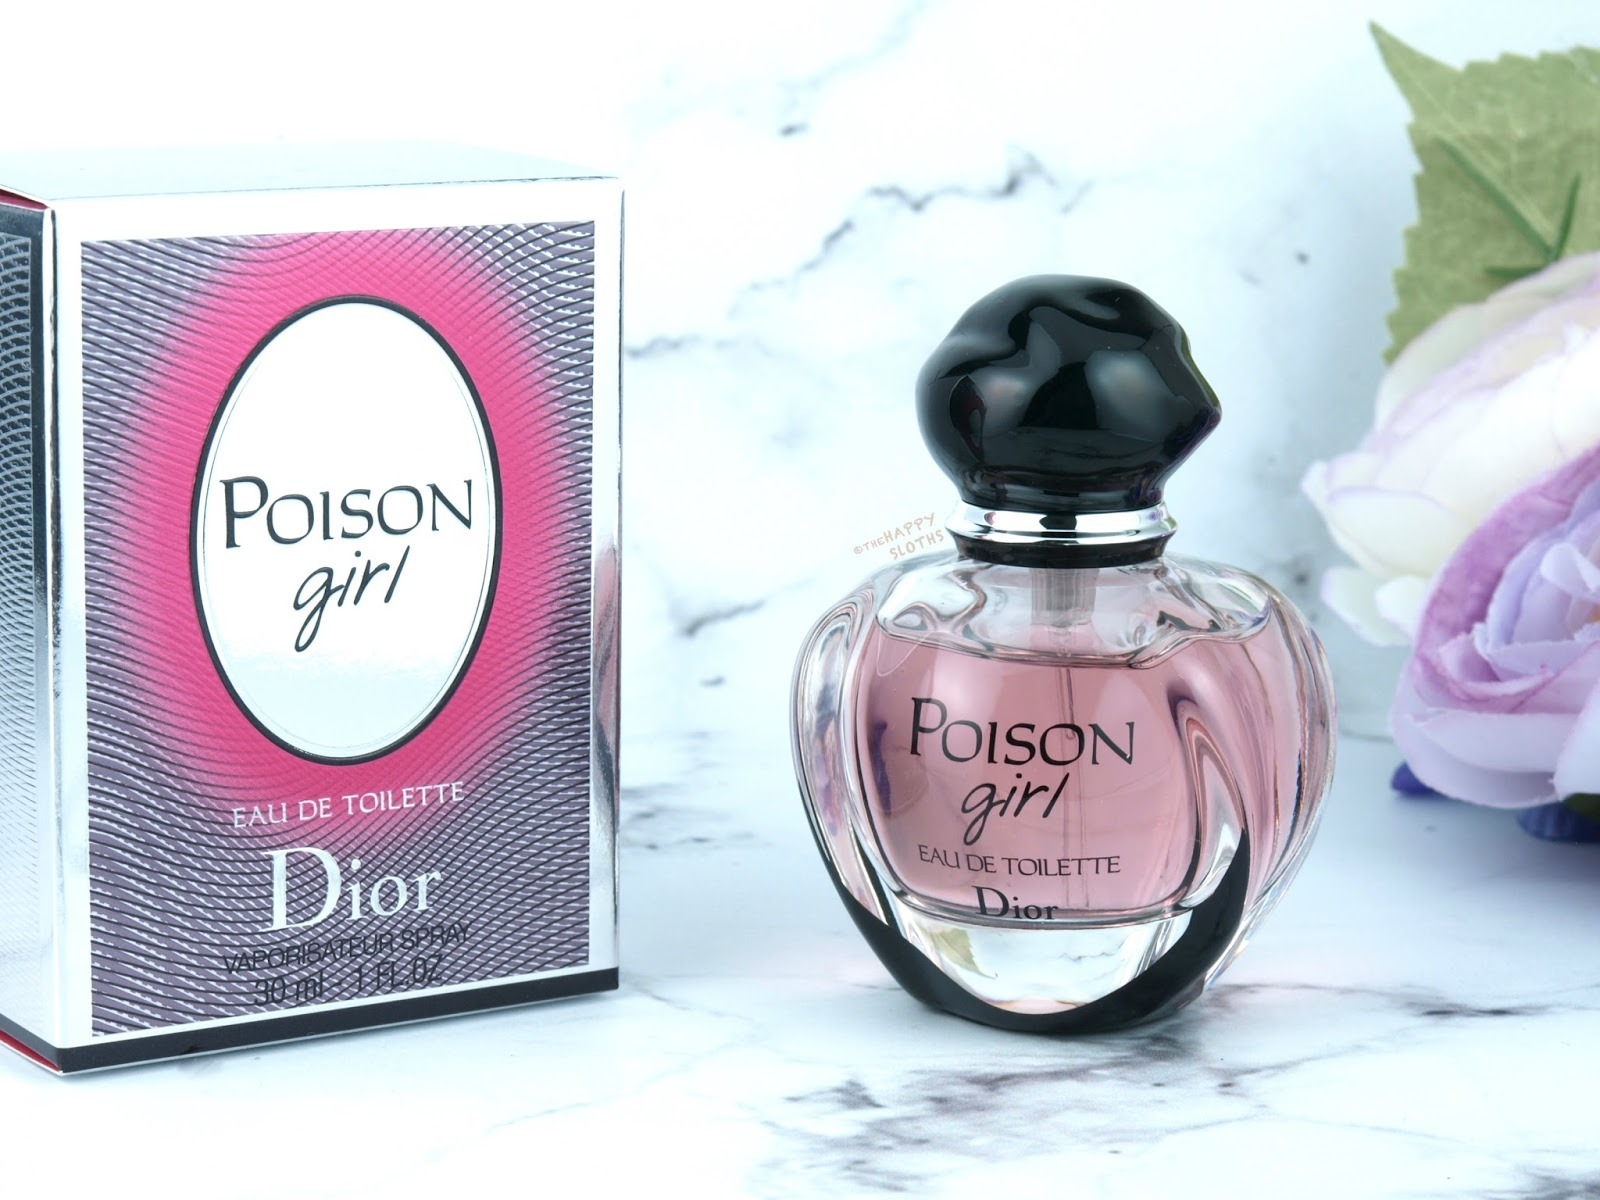 Dior Poison Girl Eau de Toilette  Review   The Happy Sloths  Beauty ... 349bba2b695f